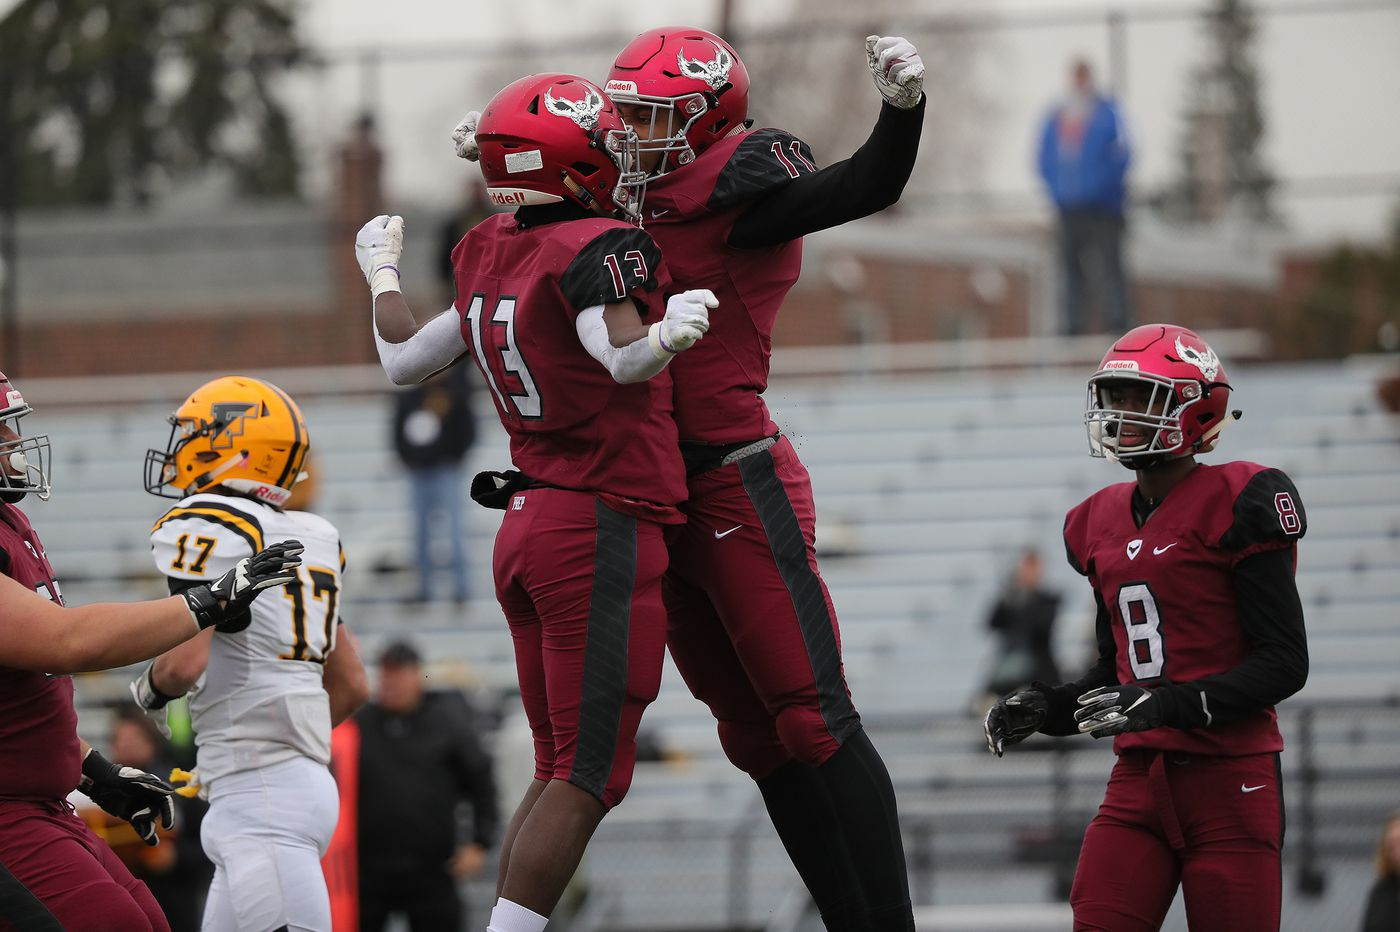 St. Joe's Prep looking to take home Class 6A football title